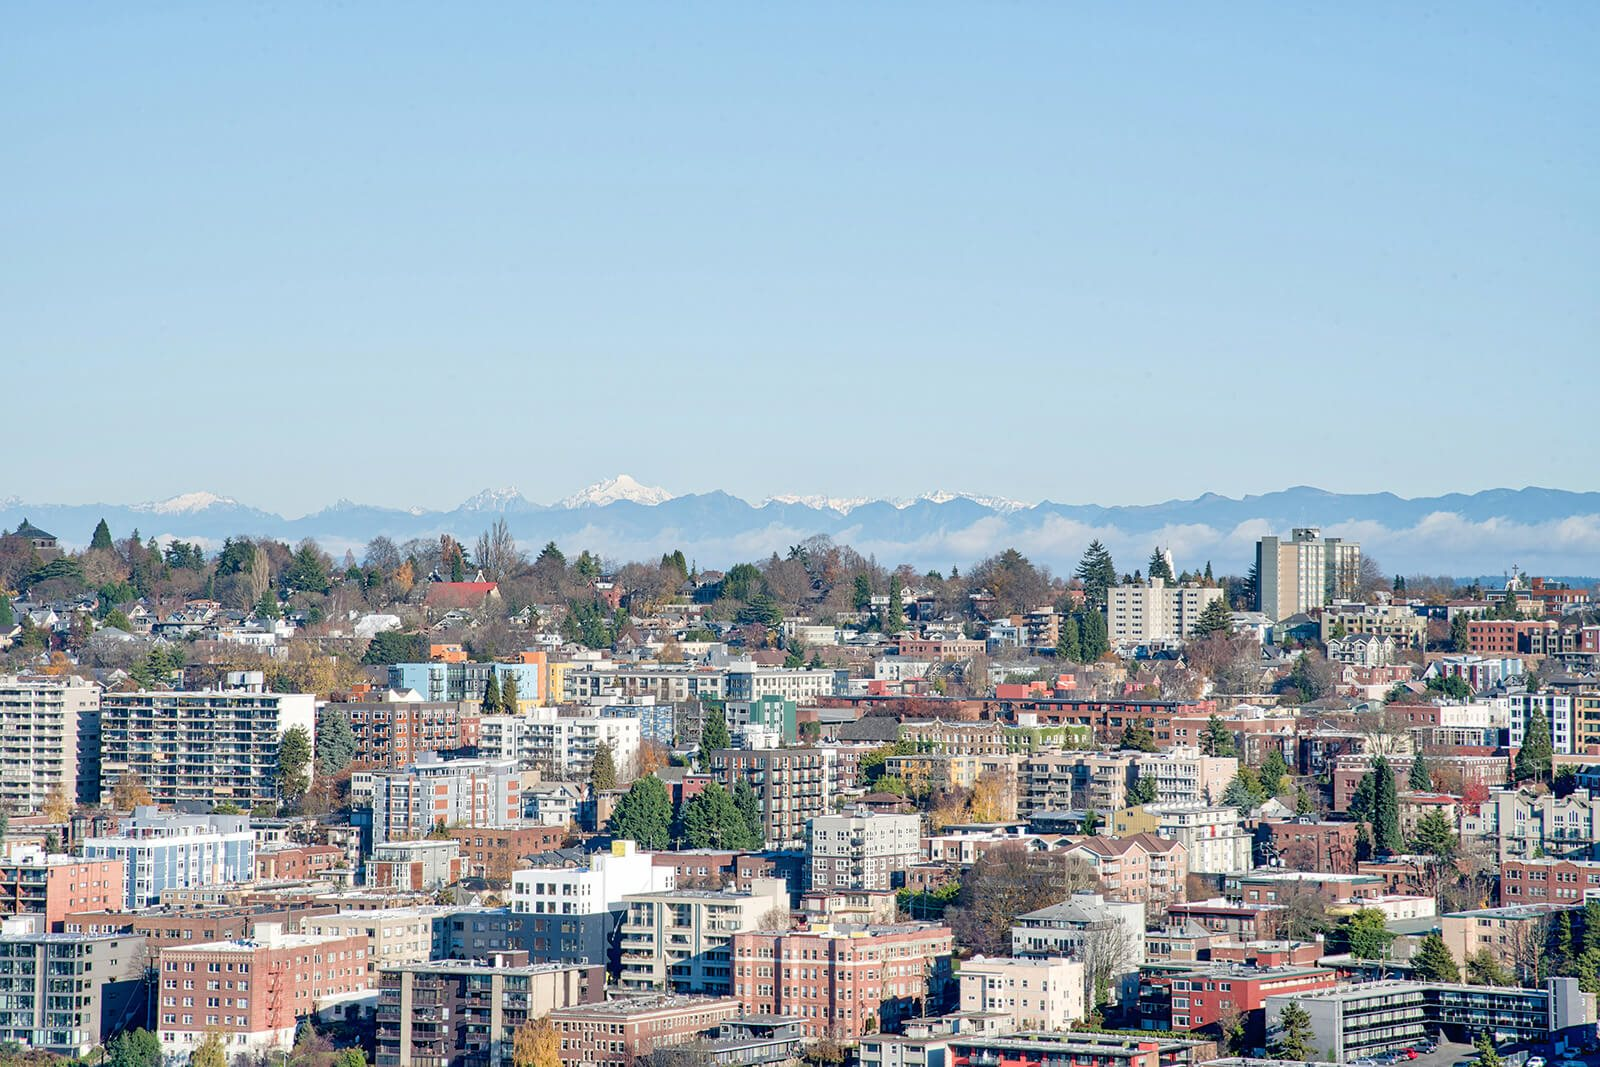 Marvelous Seattle View at Stratus, Seattle